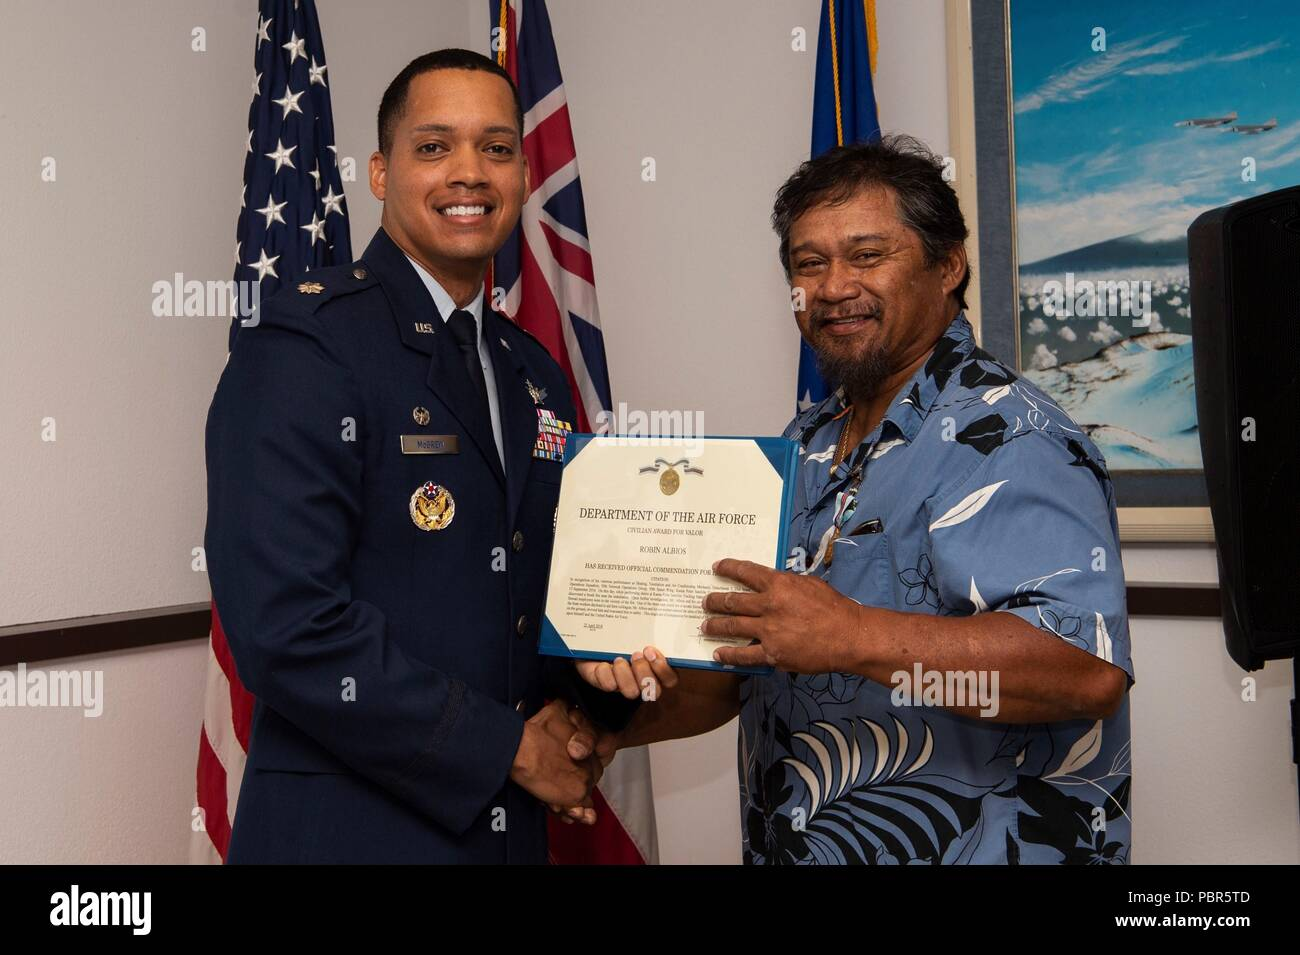 Lt. Col. Wade McGrew, 21st Space Operations Squadron commander, presents the Air Force Civilian Award for Valor to Robin Albios, Detachment 3, 21st SOPS heating, ventilation and air conditioning specialist, at the Kaena Point Satellite Tracking Station, Hawaii, July 23, 2018. Two years ago, Albios provided medical aid to a state of Hawaii volunteer field crew member who suffered from smoke inhalation during a fire at the Kuaokala Game Management Area. (U.S. Air Force photo by Tech. Sgt. Heather Redman) - Stock Image